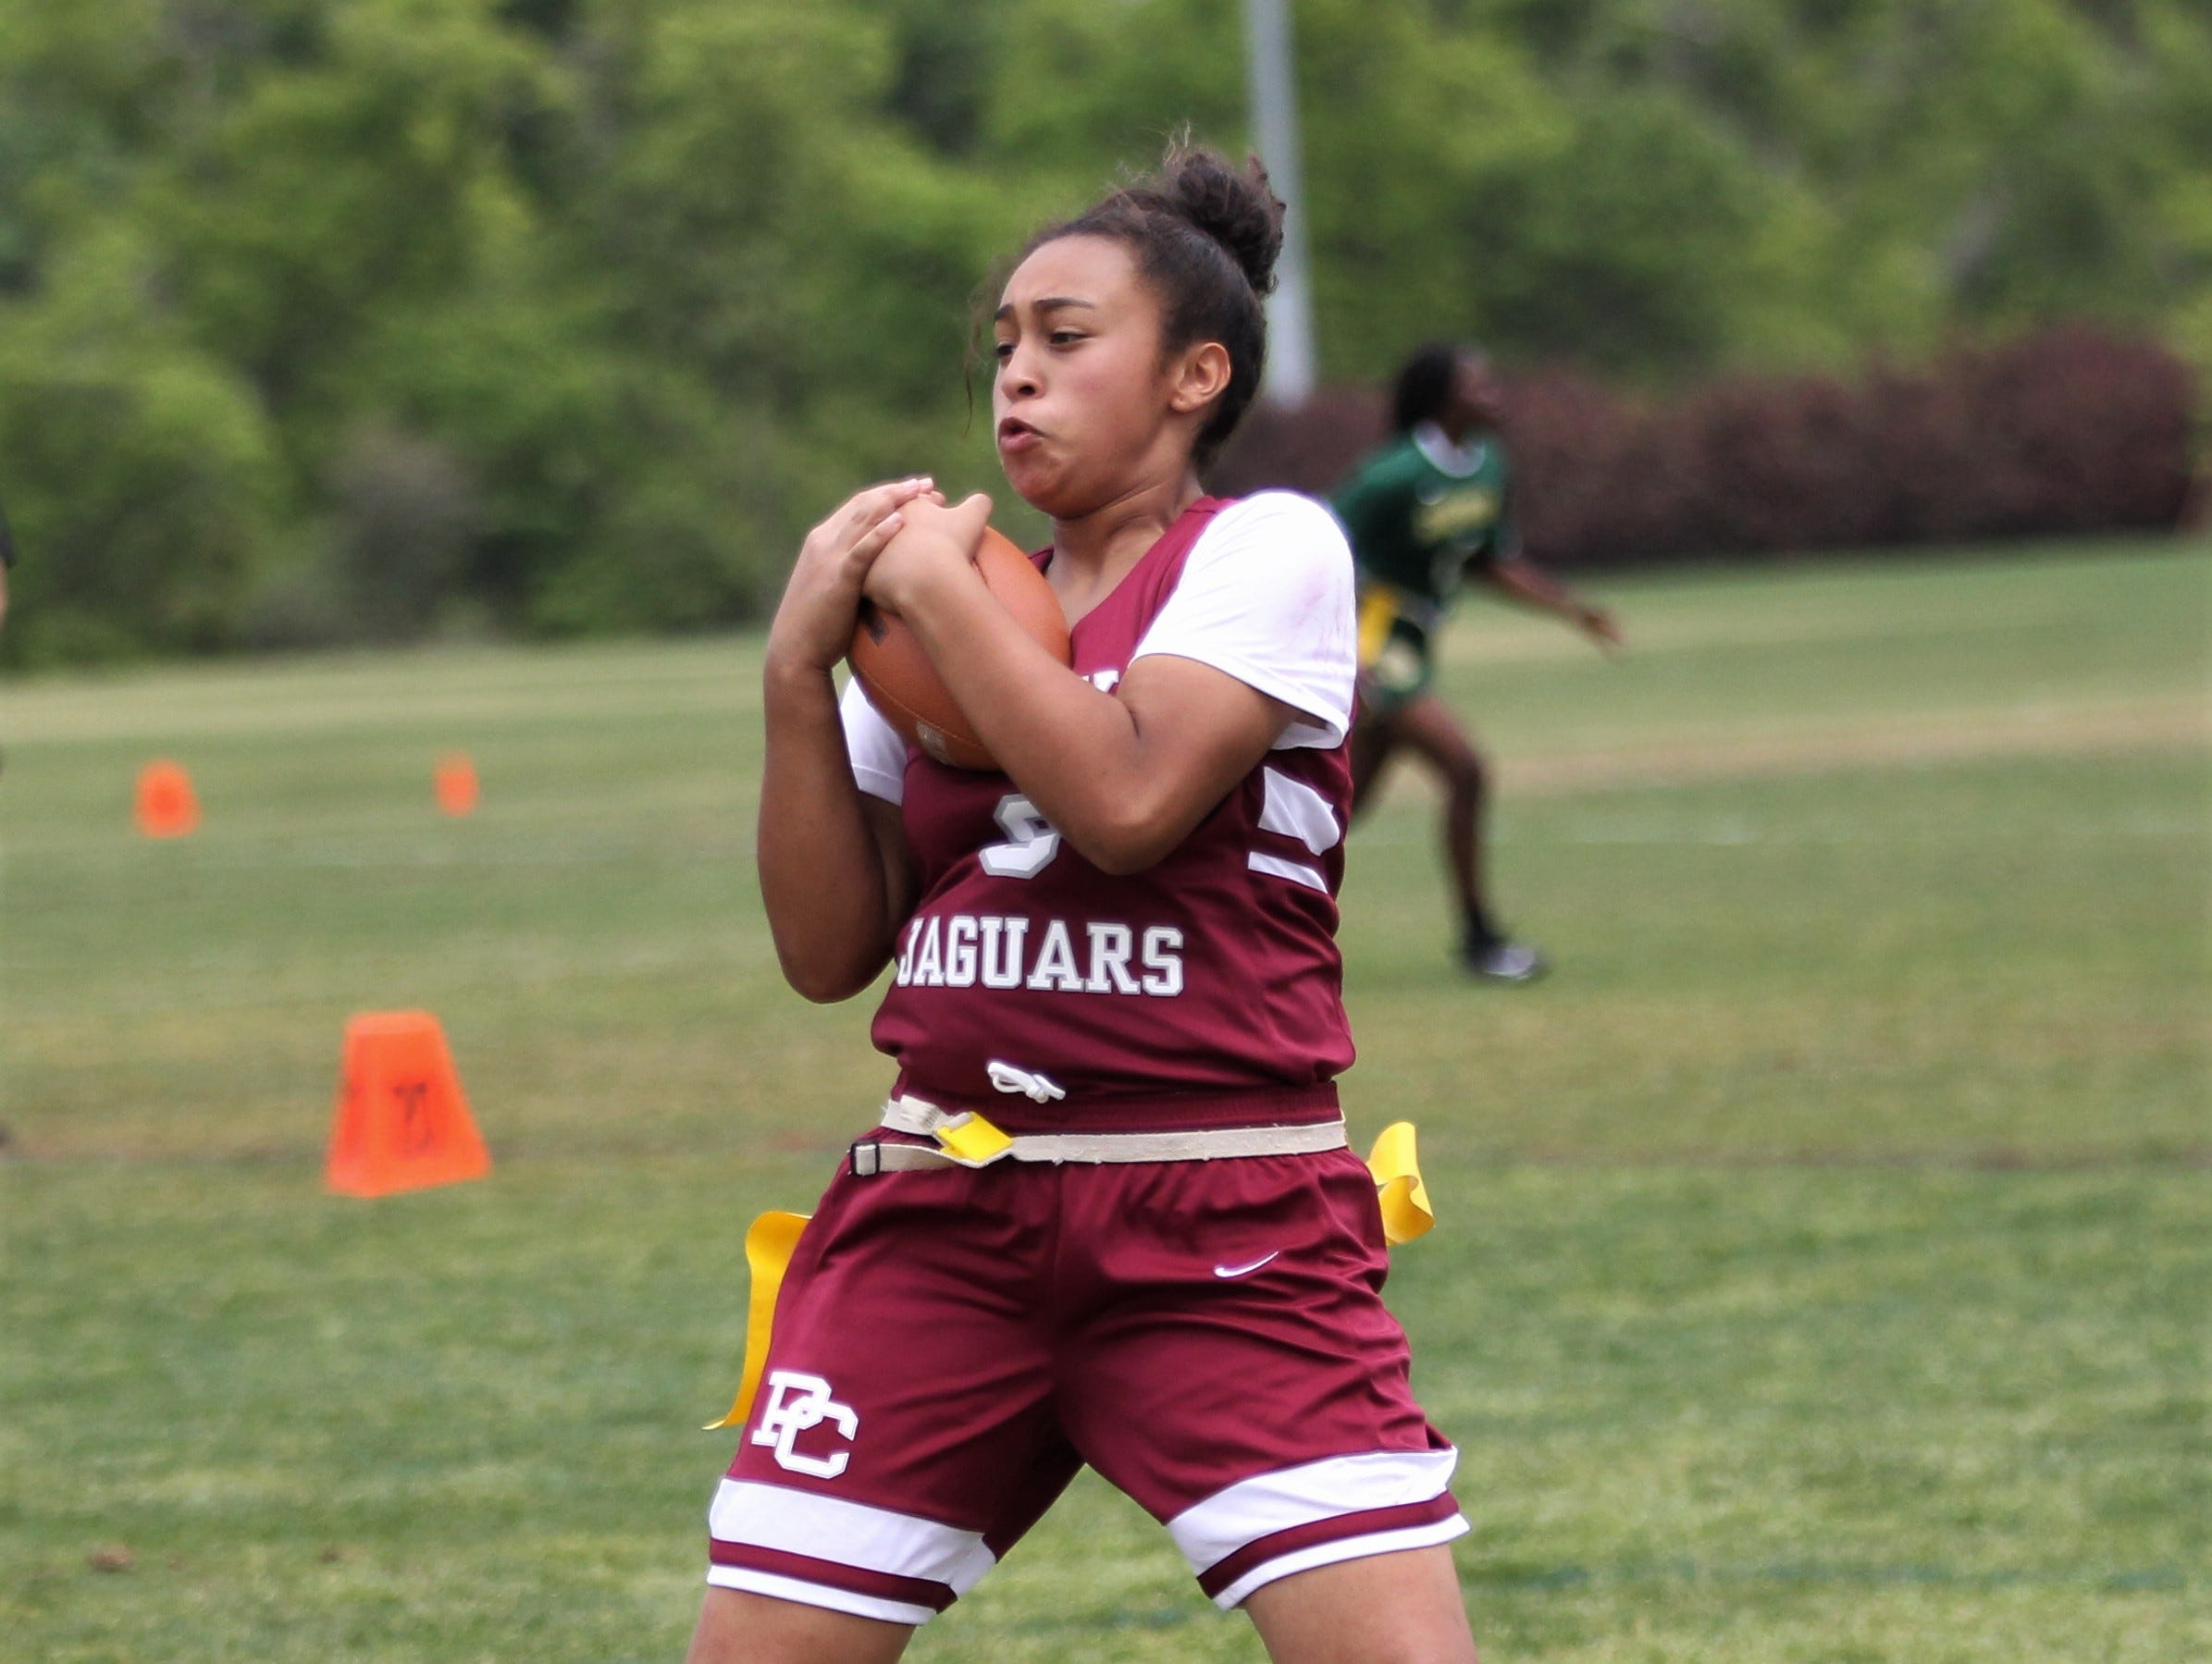 Pines Charter plays in the 2019 Capital City Classic flag football tournament at the FSU Rec SportsPlex on April 6, 2019.